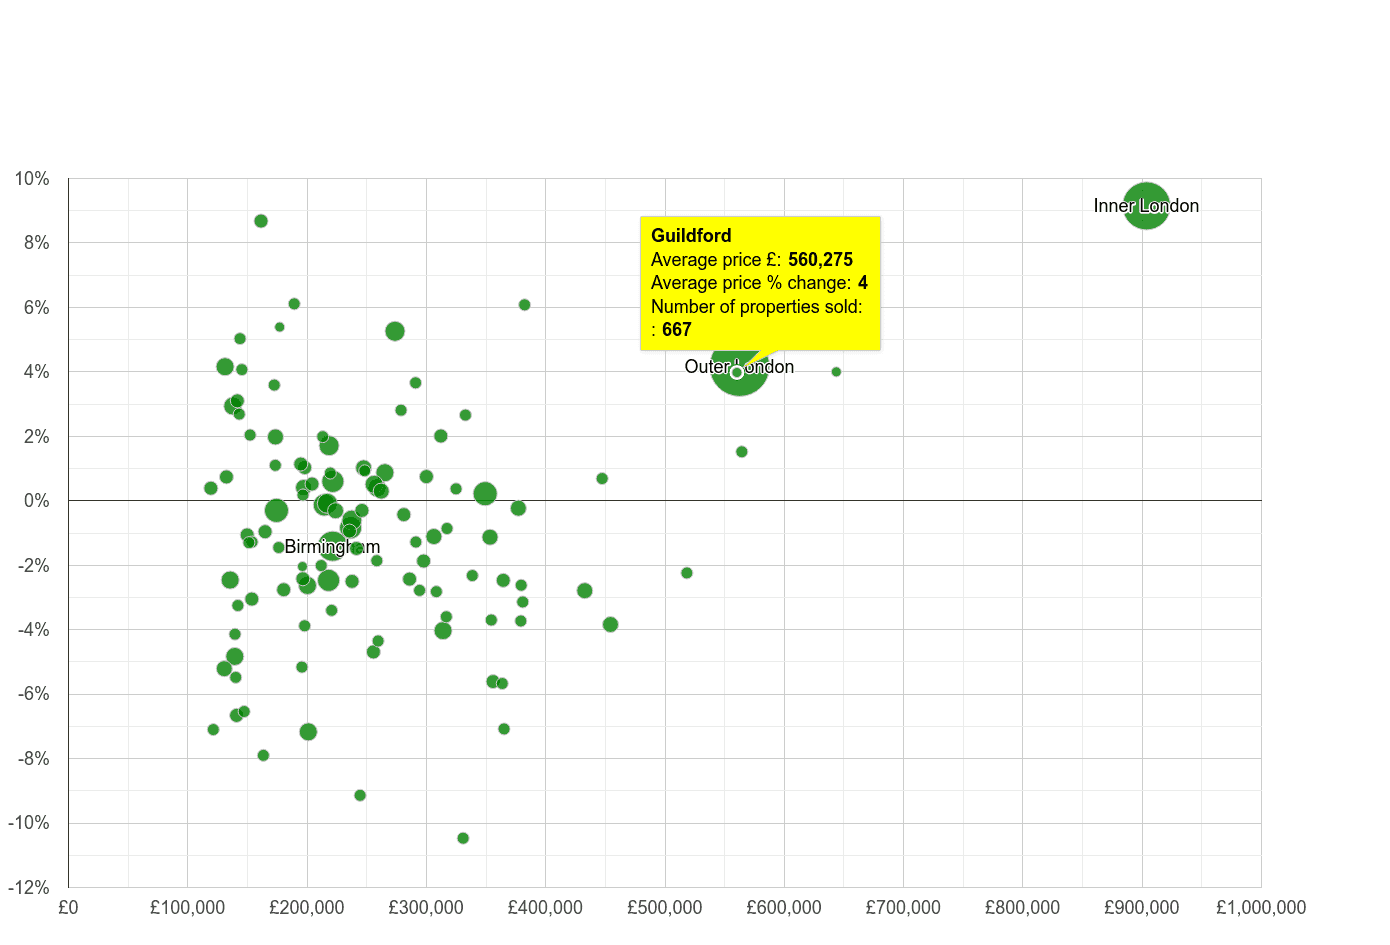 Guildford house prices compared to other cities